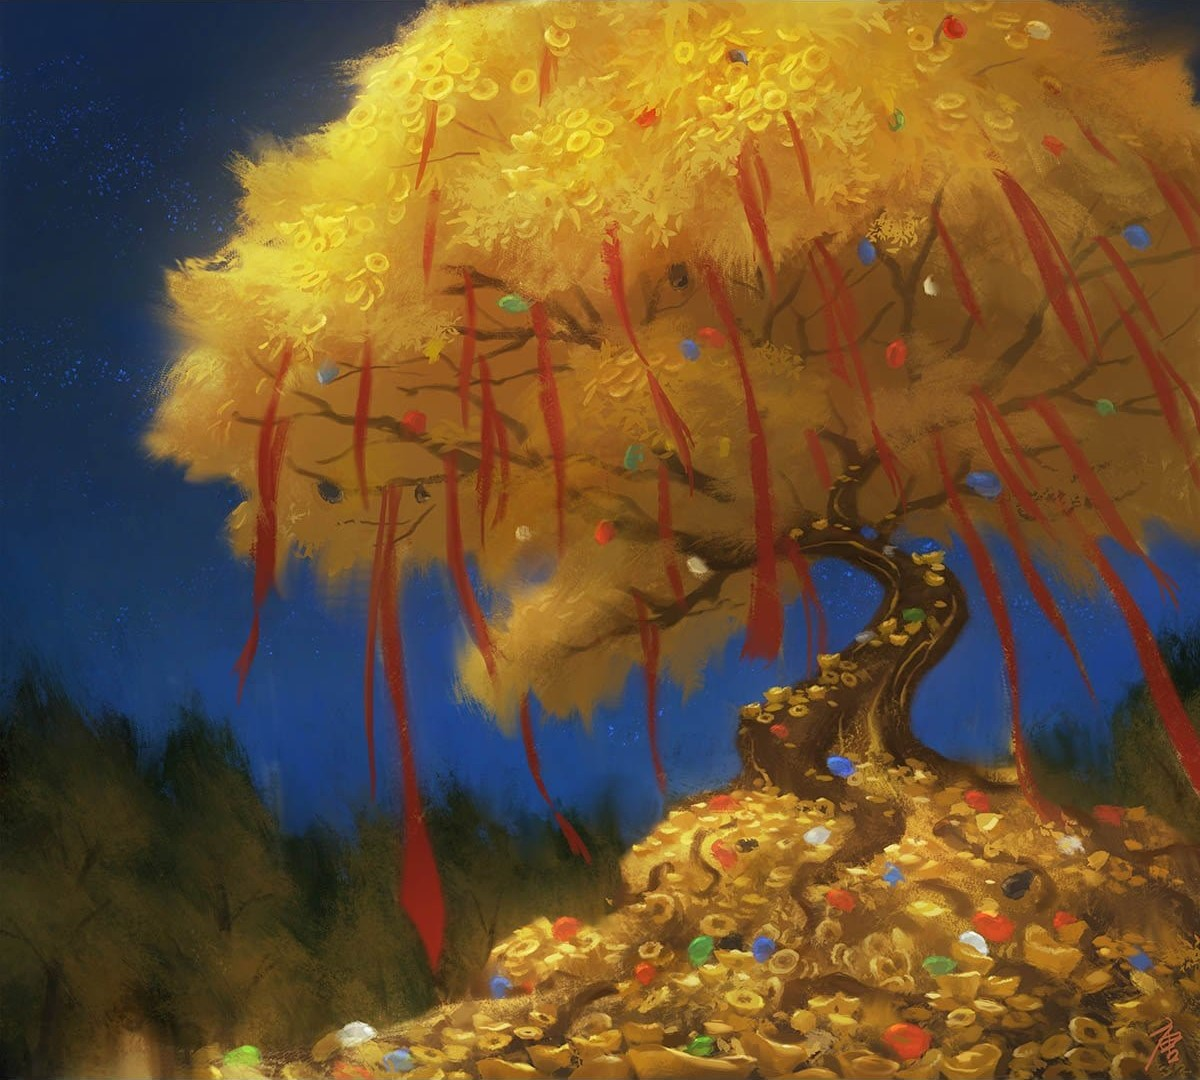 Treasure token (misc. promos) | Illustration by YW Tang